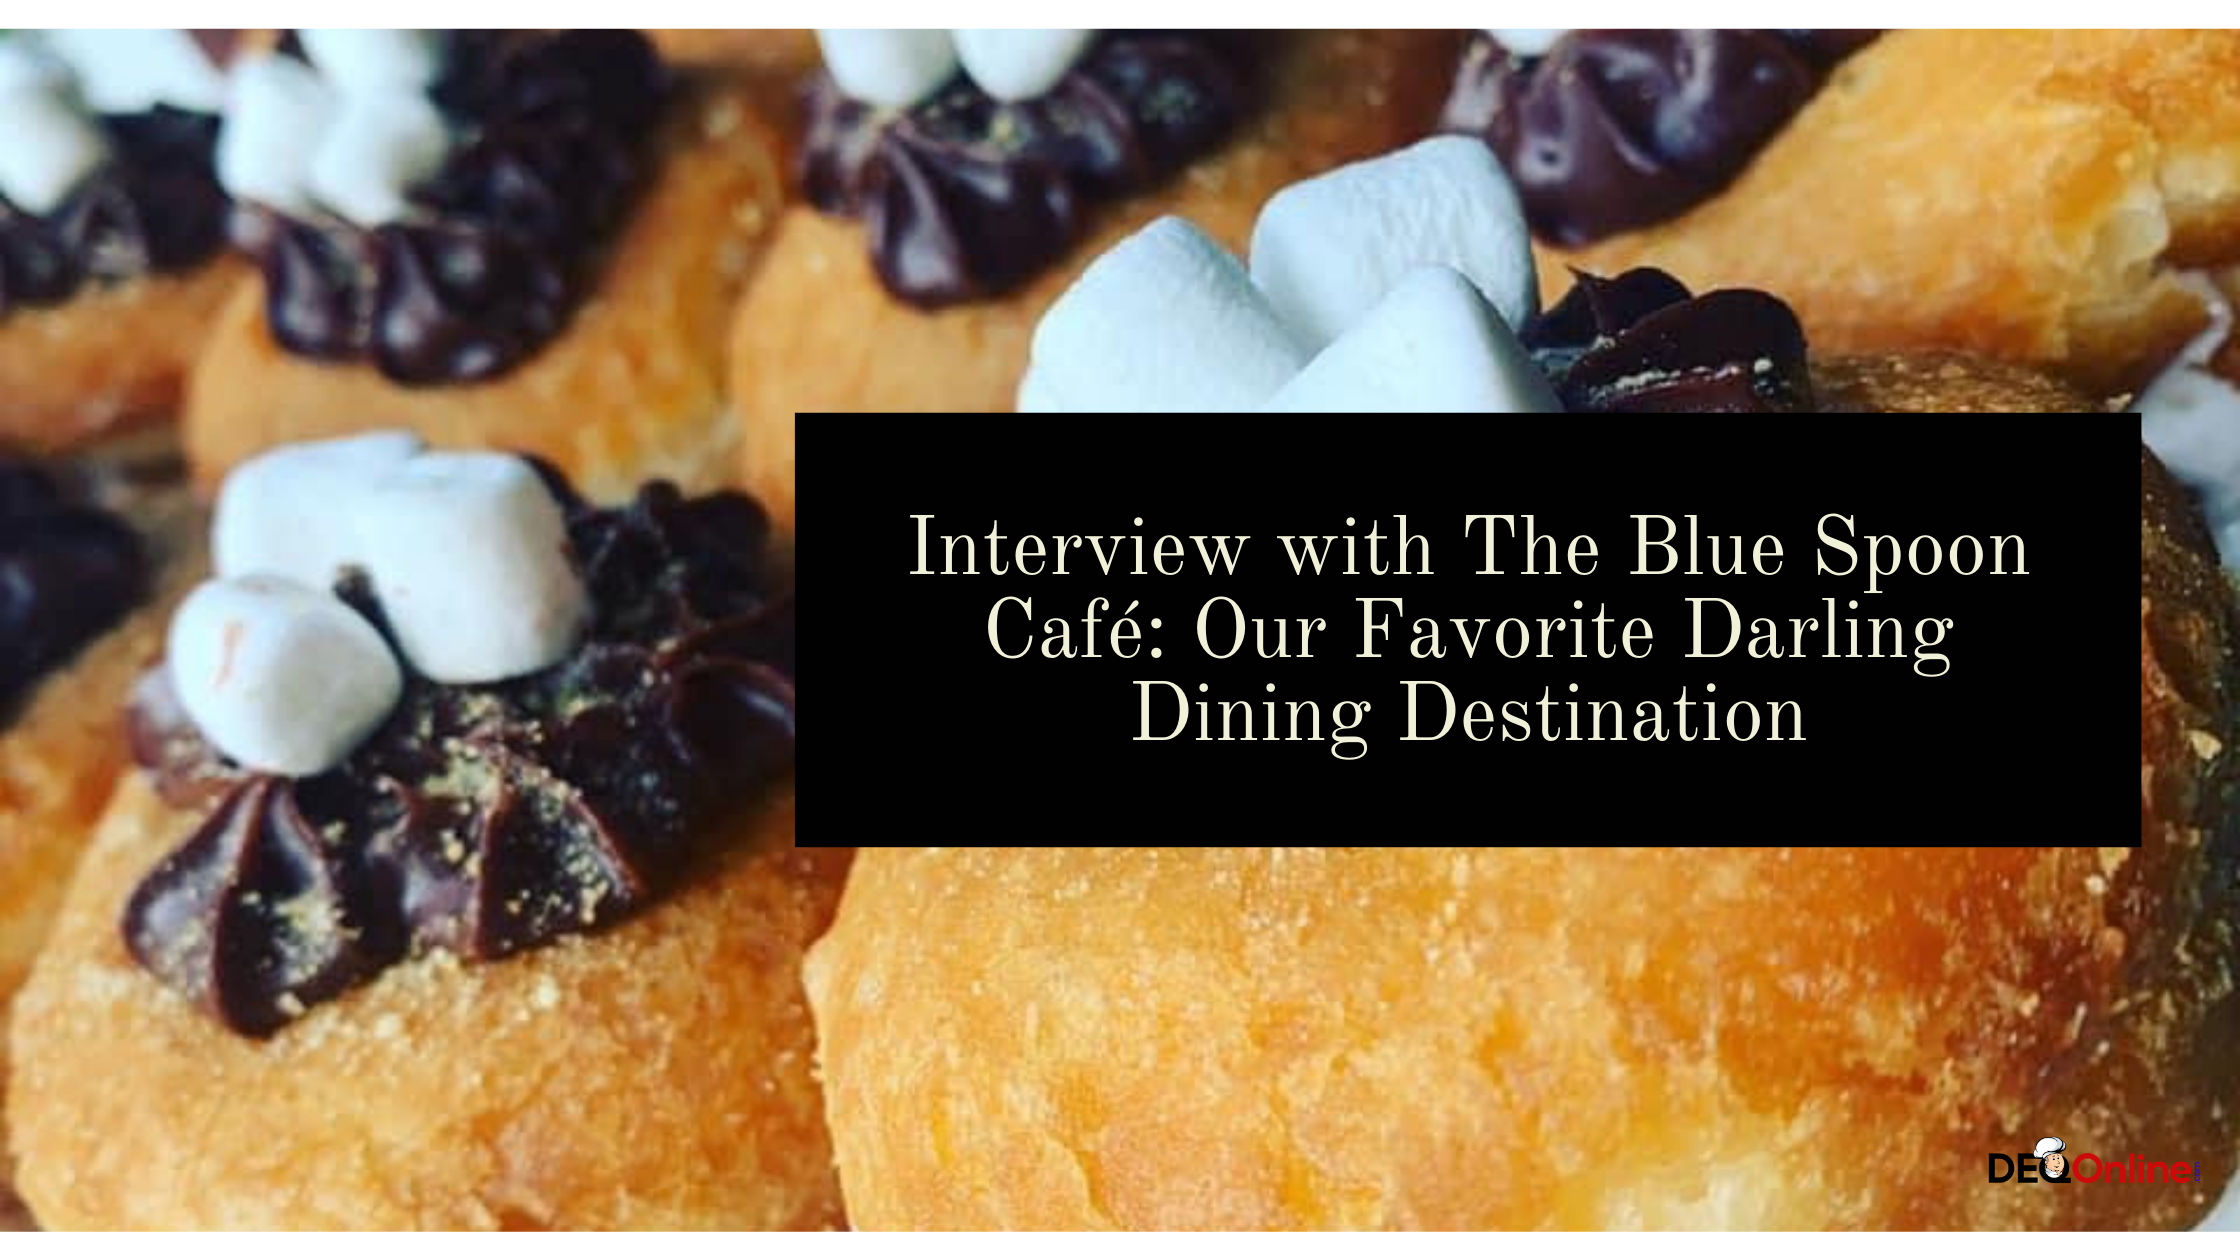 Interview with The Blue Spoon Café: Our Favorite Darling Dining Destination